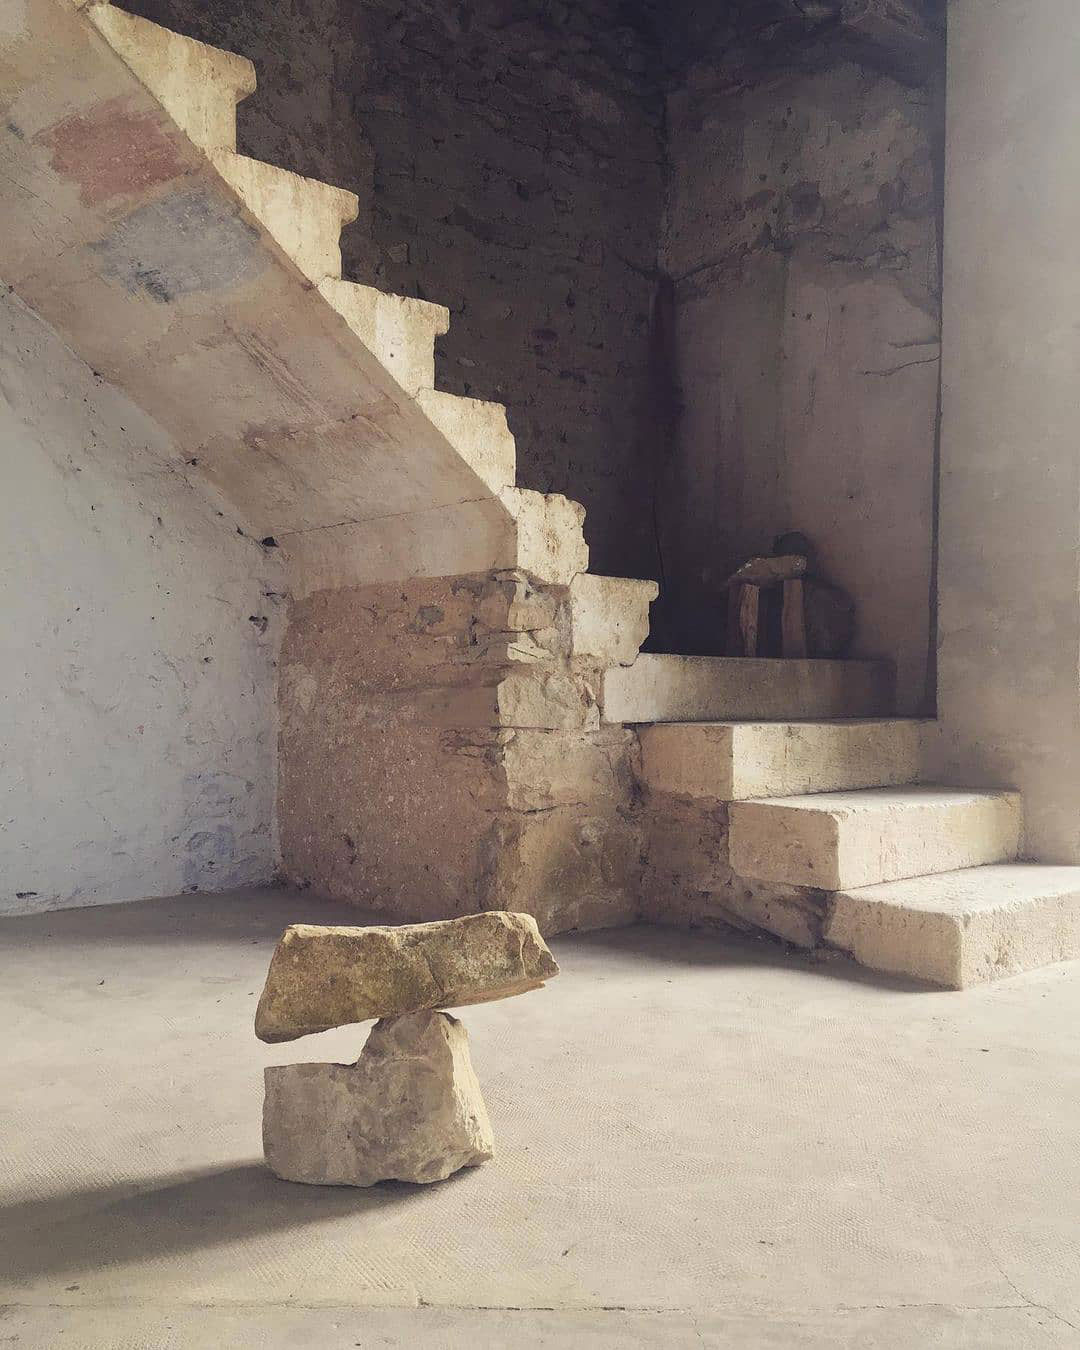 Hard, rough limestone staircase attached to a 90 degree wall with a rough stone sculpture in the foreground and another rough stone sculpture in the background on the stairs